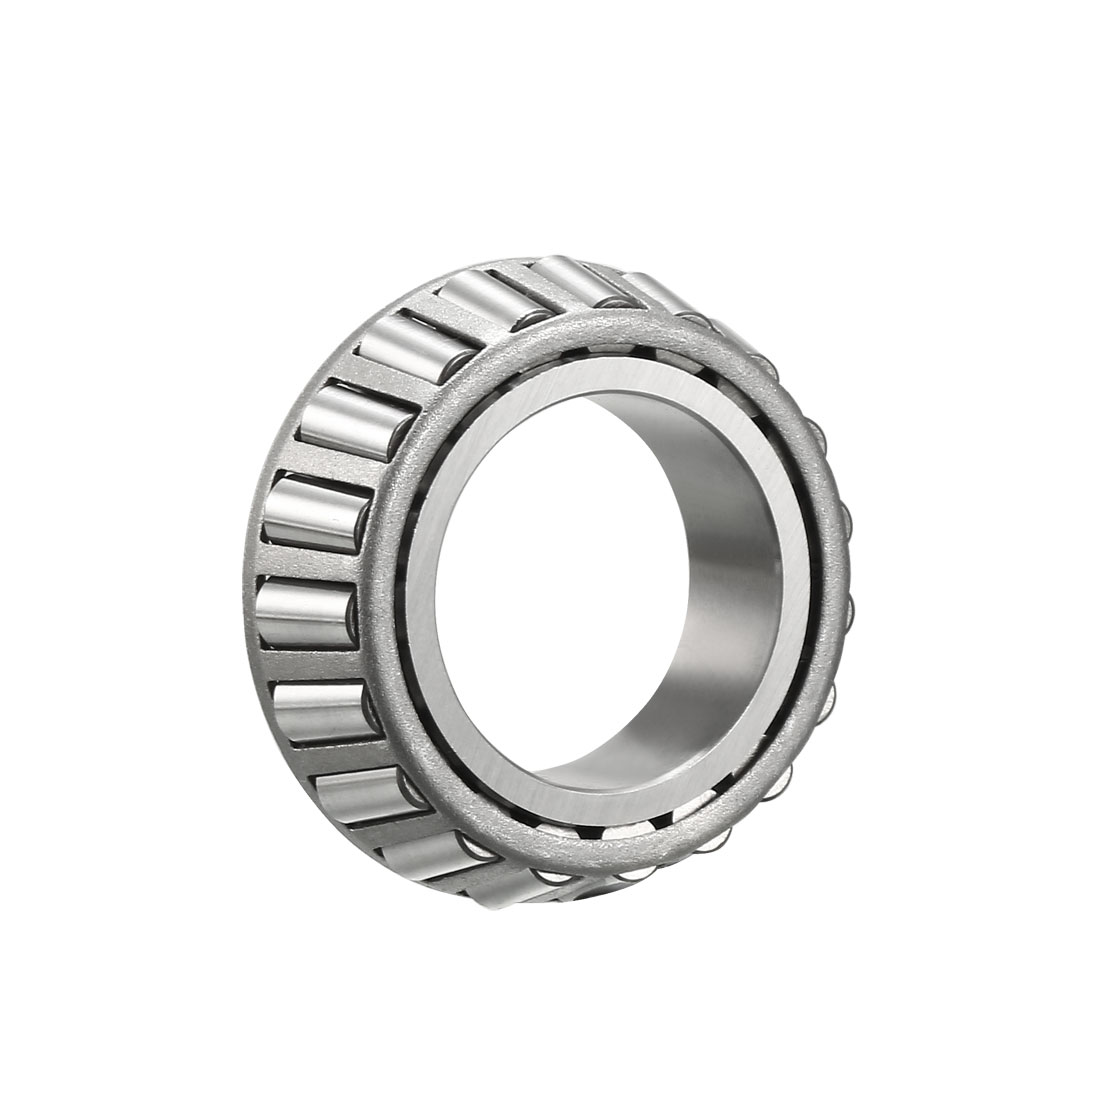 "8125 Tapered Roller Bearing Single Cone 1.25"" Bore 0.594"" Width"